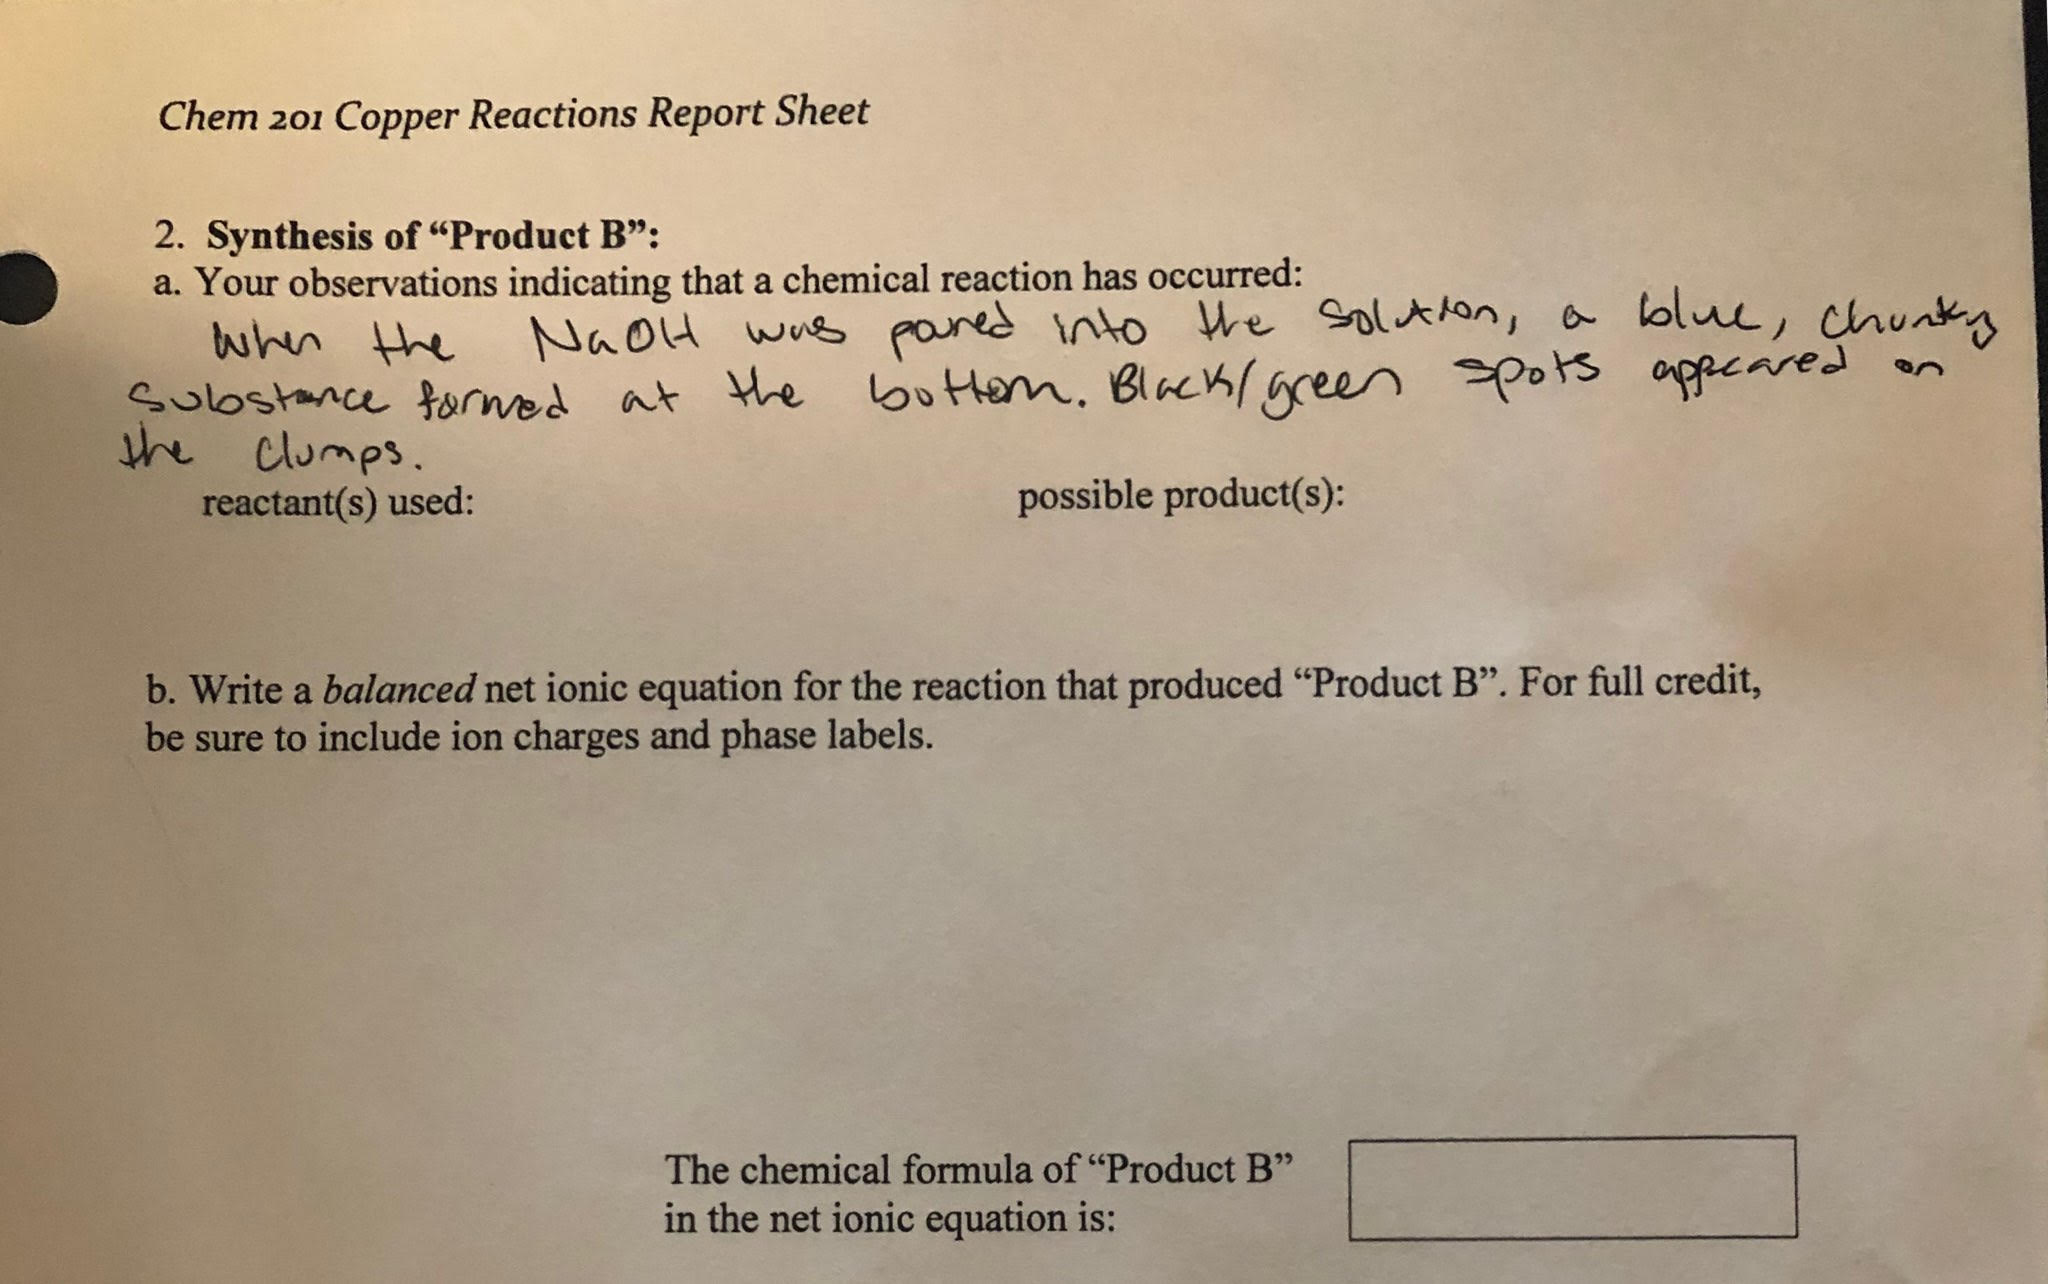 "Chem 201 Copper Reactions Report Sheet 2. Synthesis of ""Product B"": a. Your observations indicating that a chemical reaction has occurred: lolu, chunky wus pared nto We Solt tan the Naou oppeared sHem. Bchgreen pors apperes Sulostance ormed at e he clumps. possible product(s): reactant(s) used: b. Write a balanced net ionic equation for the reaction that produced ""Product B"". For full credit, be sure to include ion charges and phase labels. The chemical formula of ""Product B"" in the net ionic equation is:"